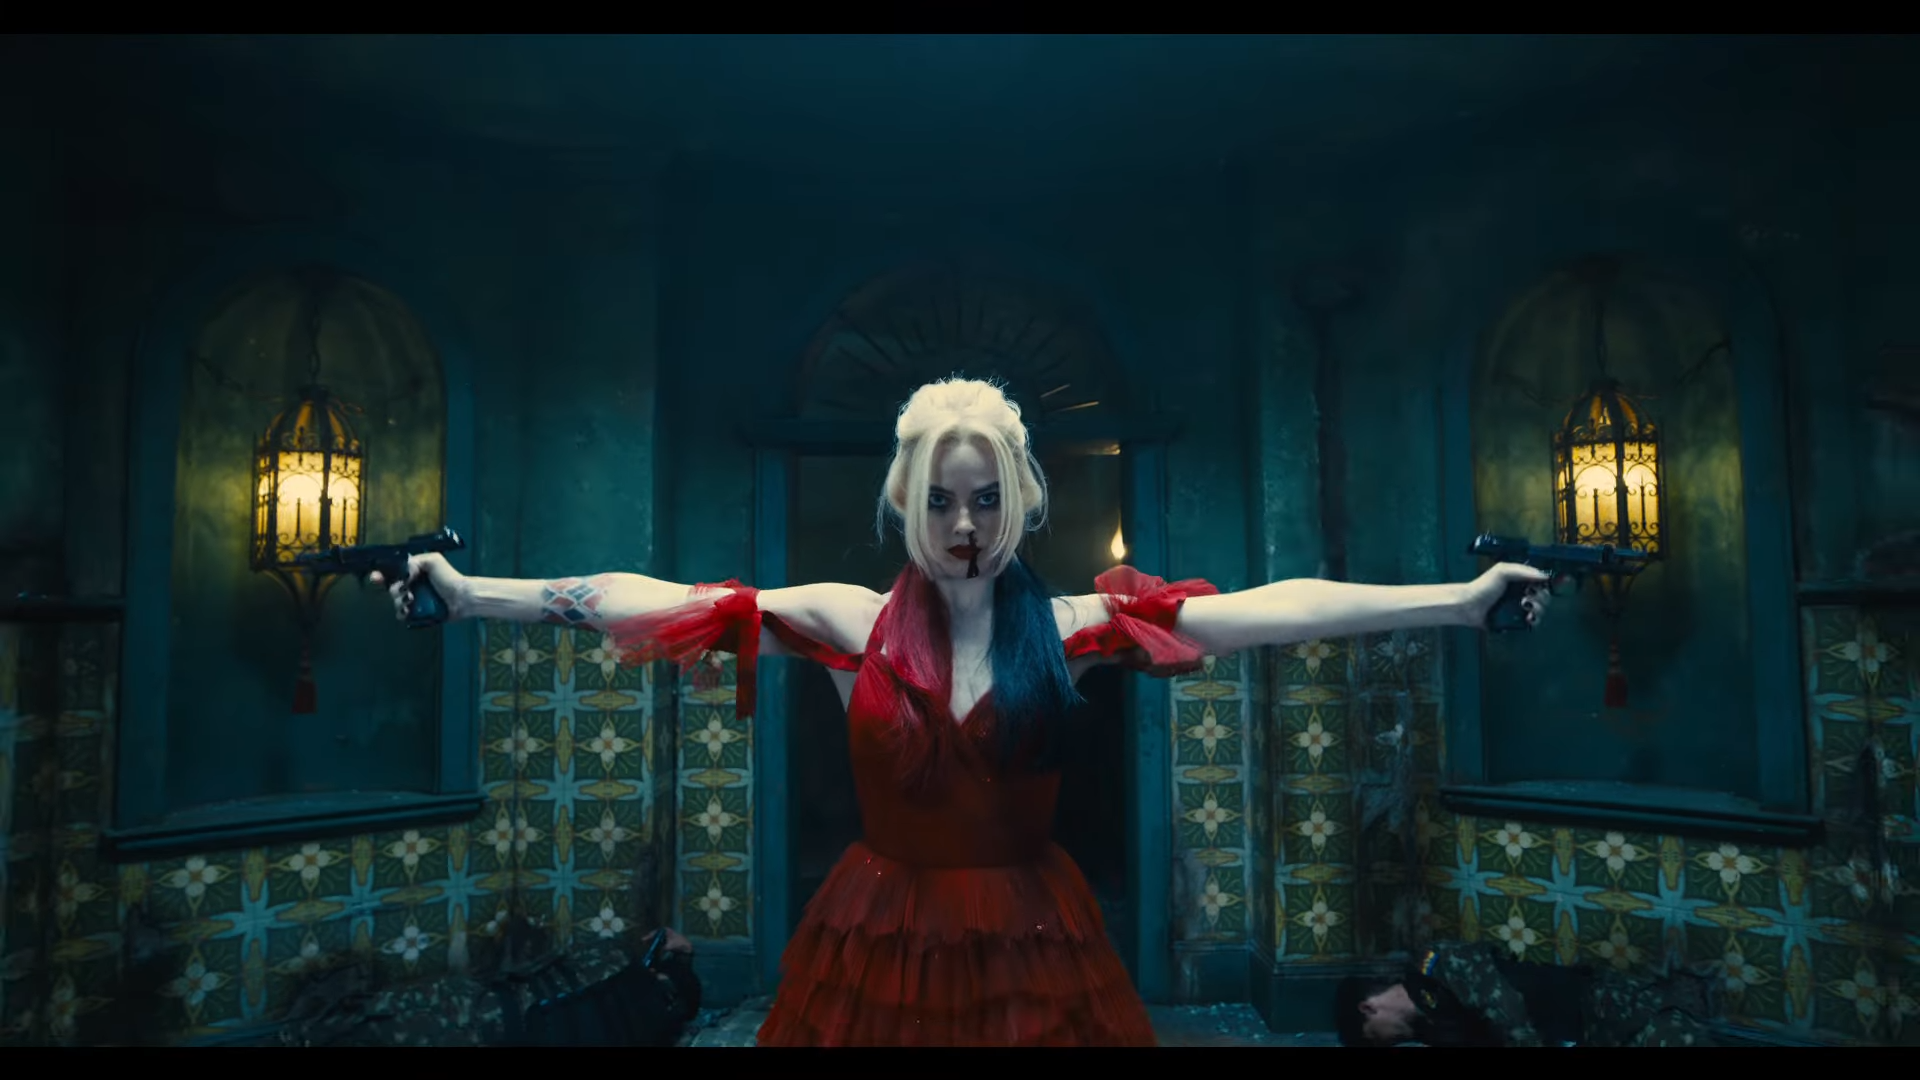 THE-SUICIDE-SQUAD-Rebellion-Trailer-1-5-screenshot-115